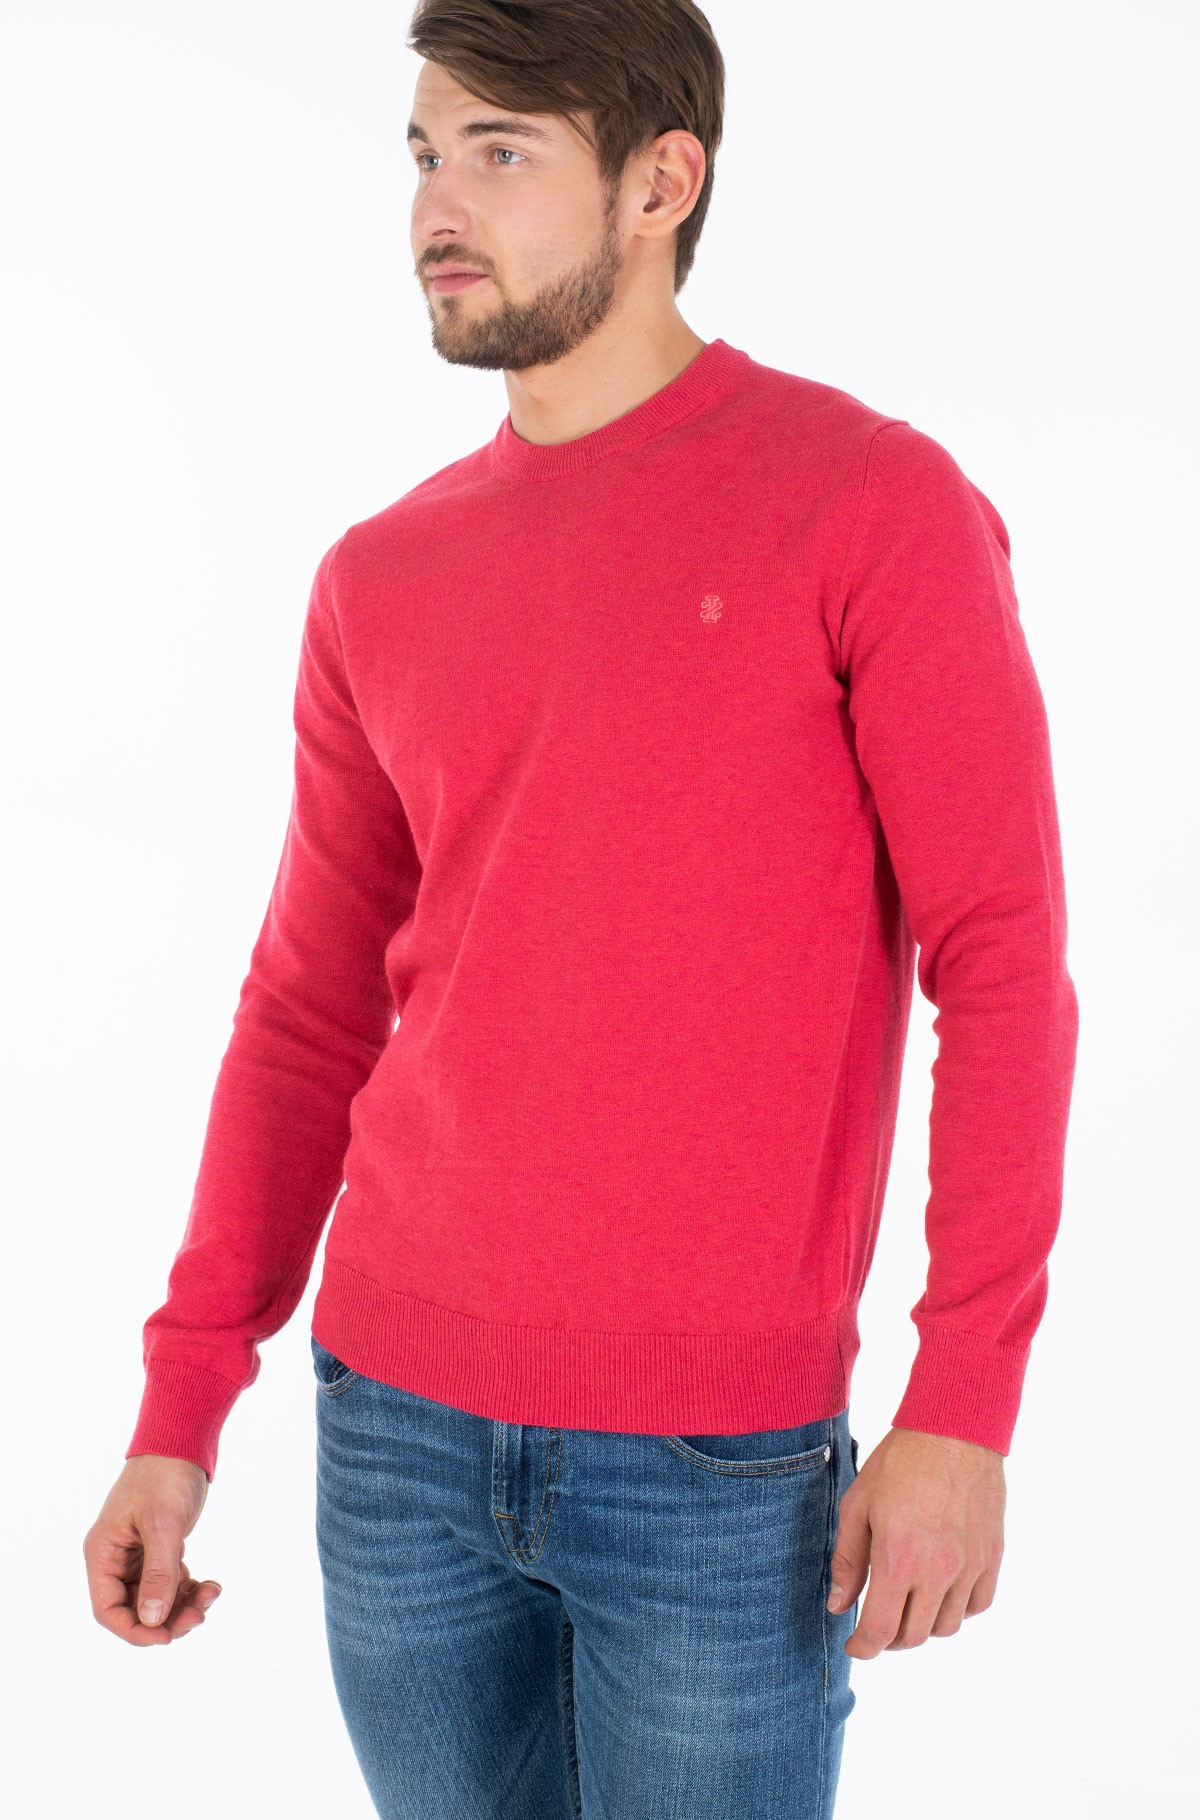 Sviiter 12GG CREW NECK SWEATER-full-2